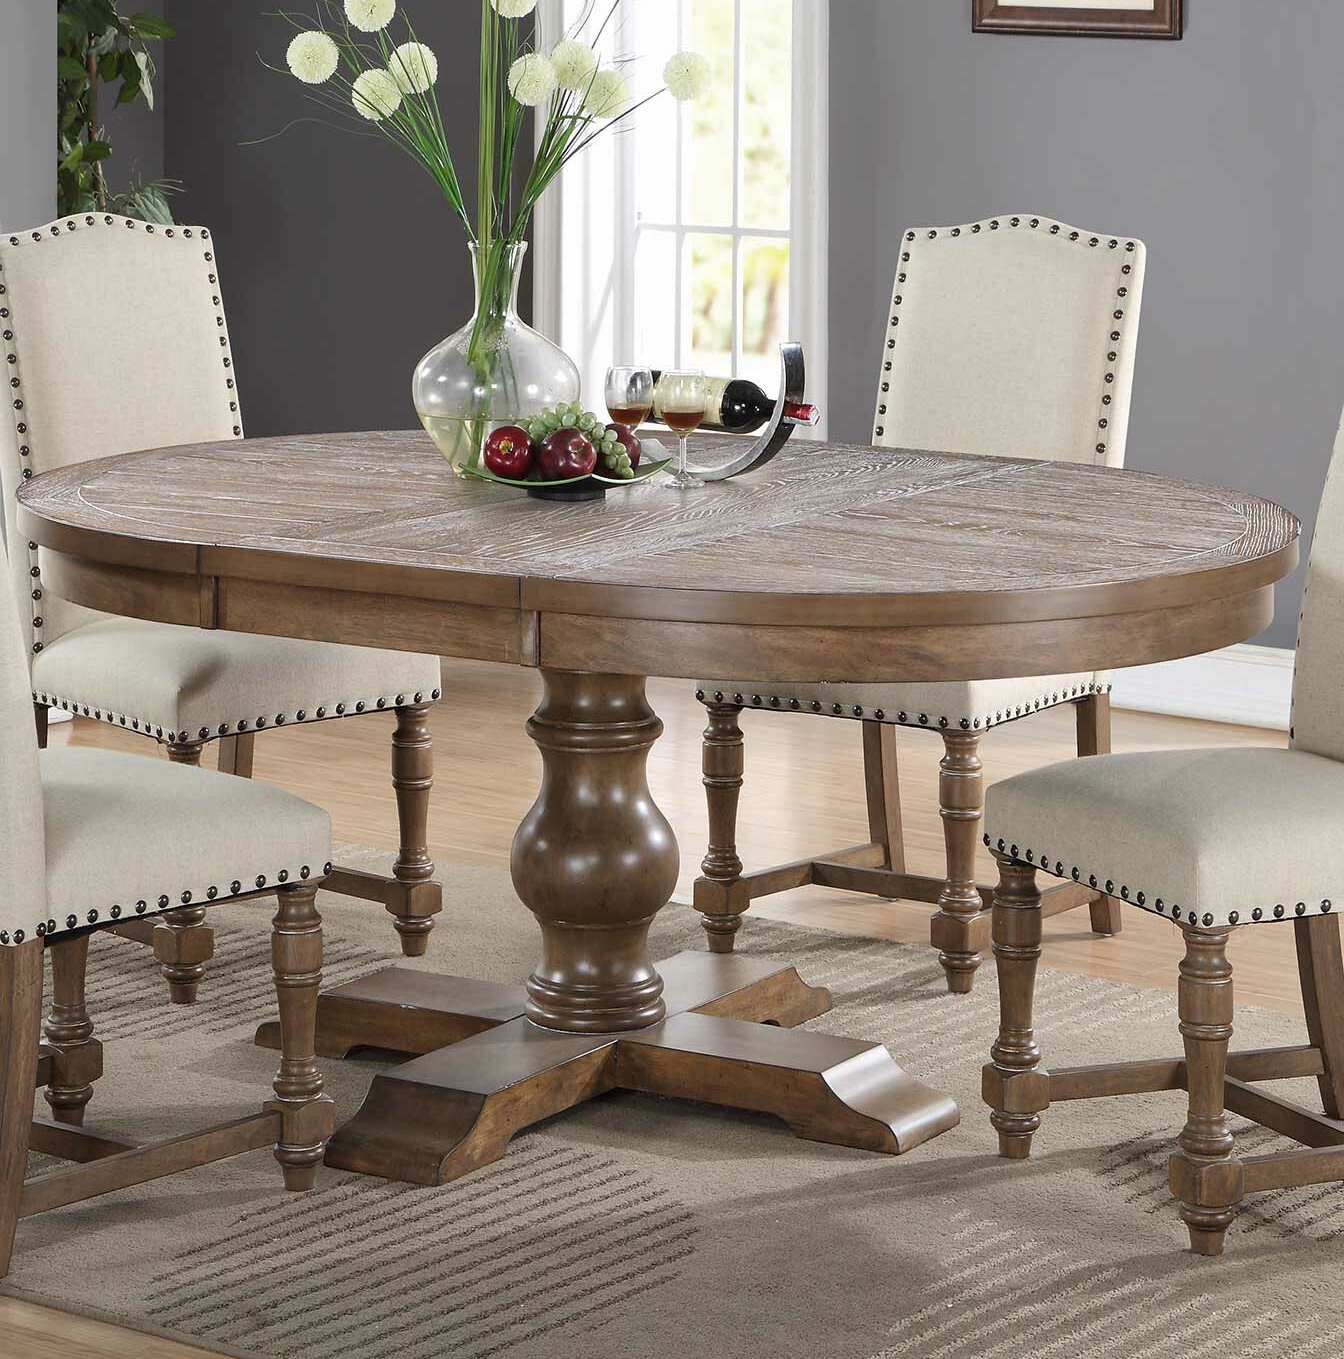 https://secure.img2-fg.wfcdn.com/im/00176477/compr-r85/5271/52714259/fortunat-extendable-dining-table.jpg